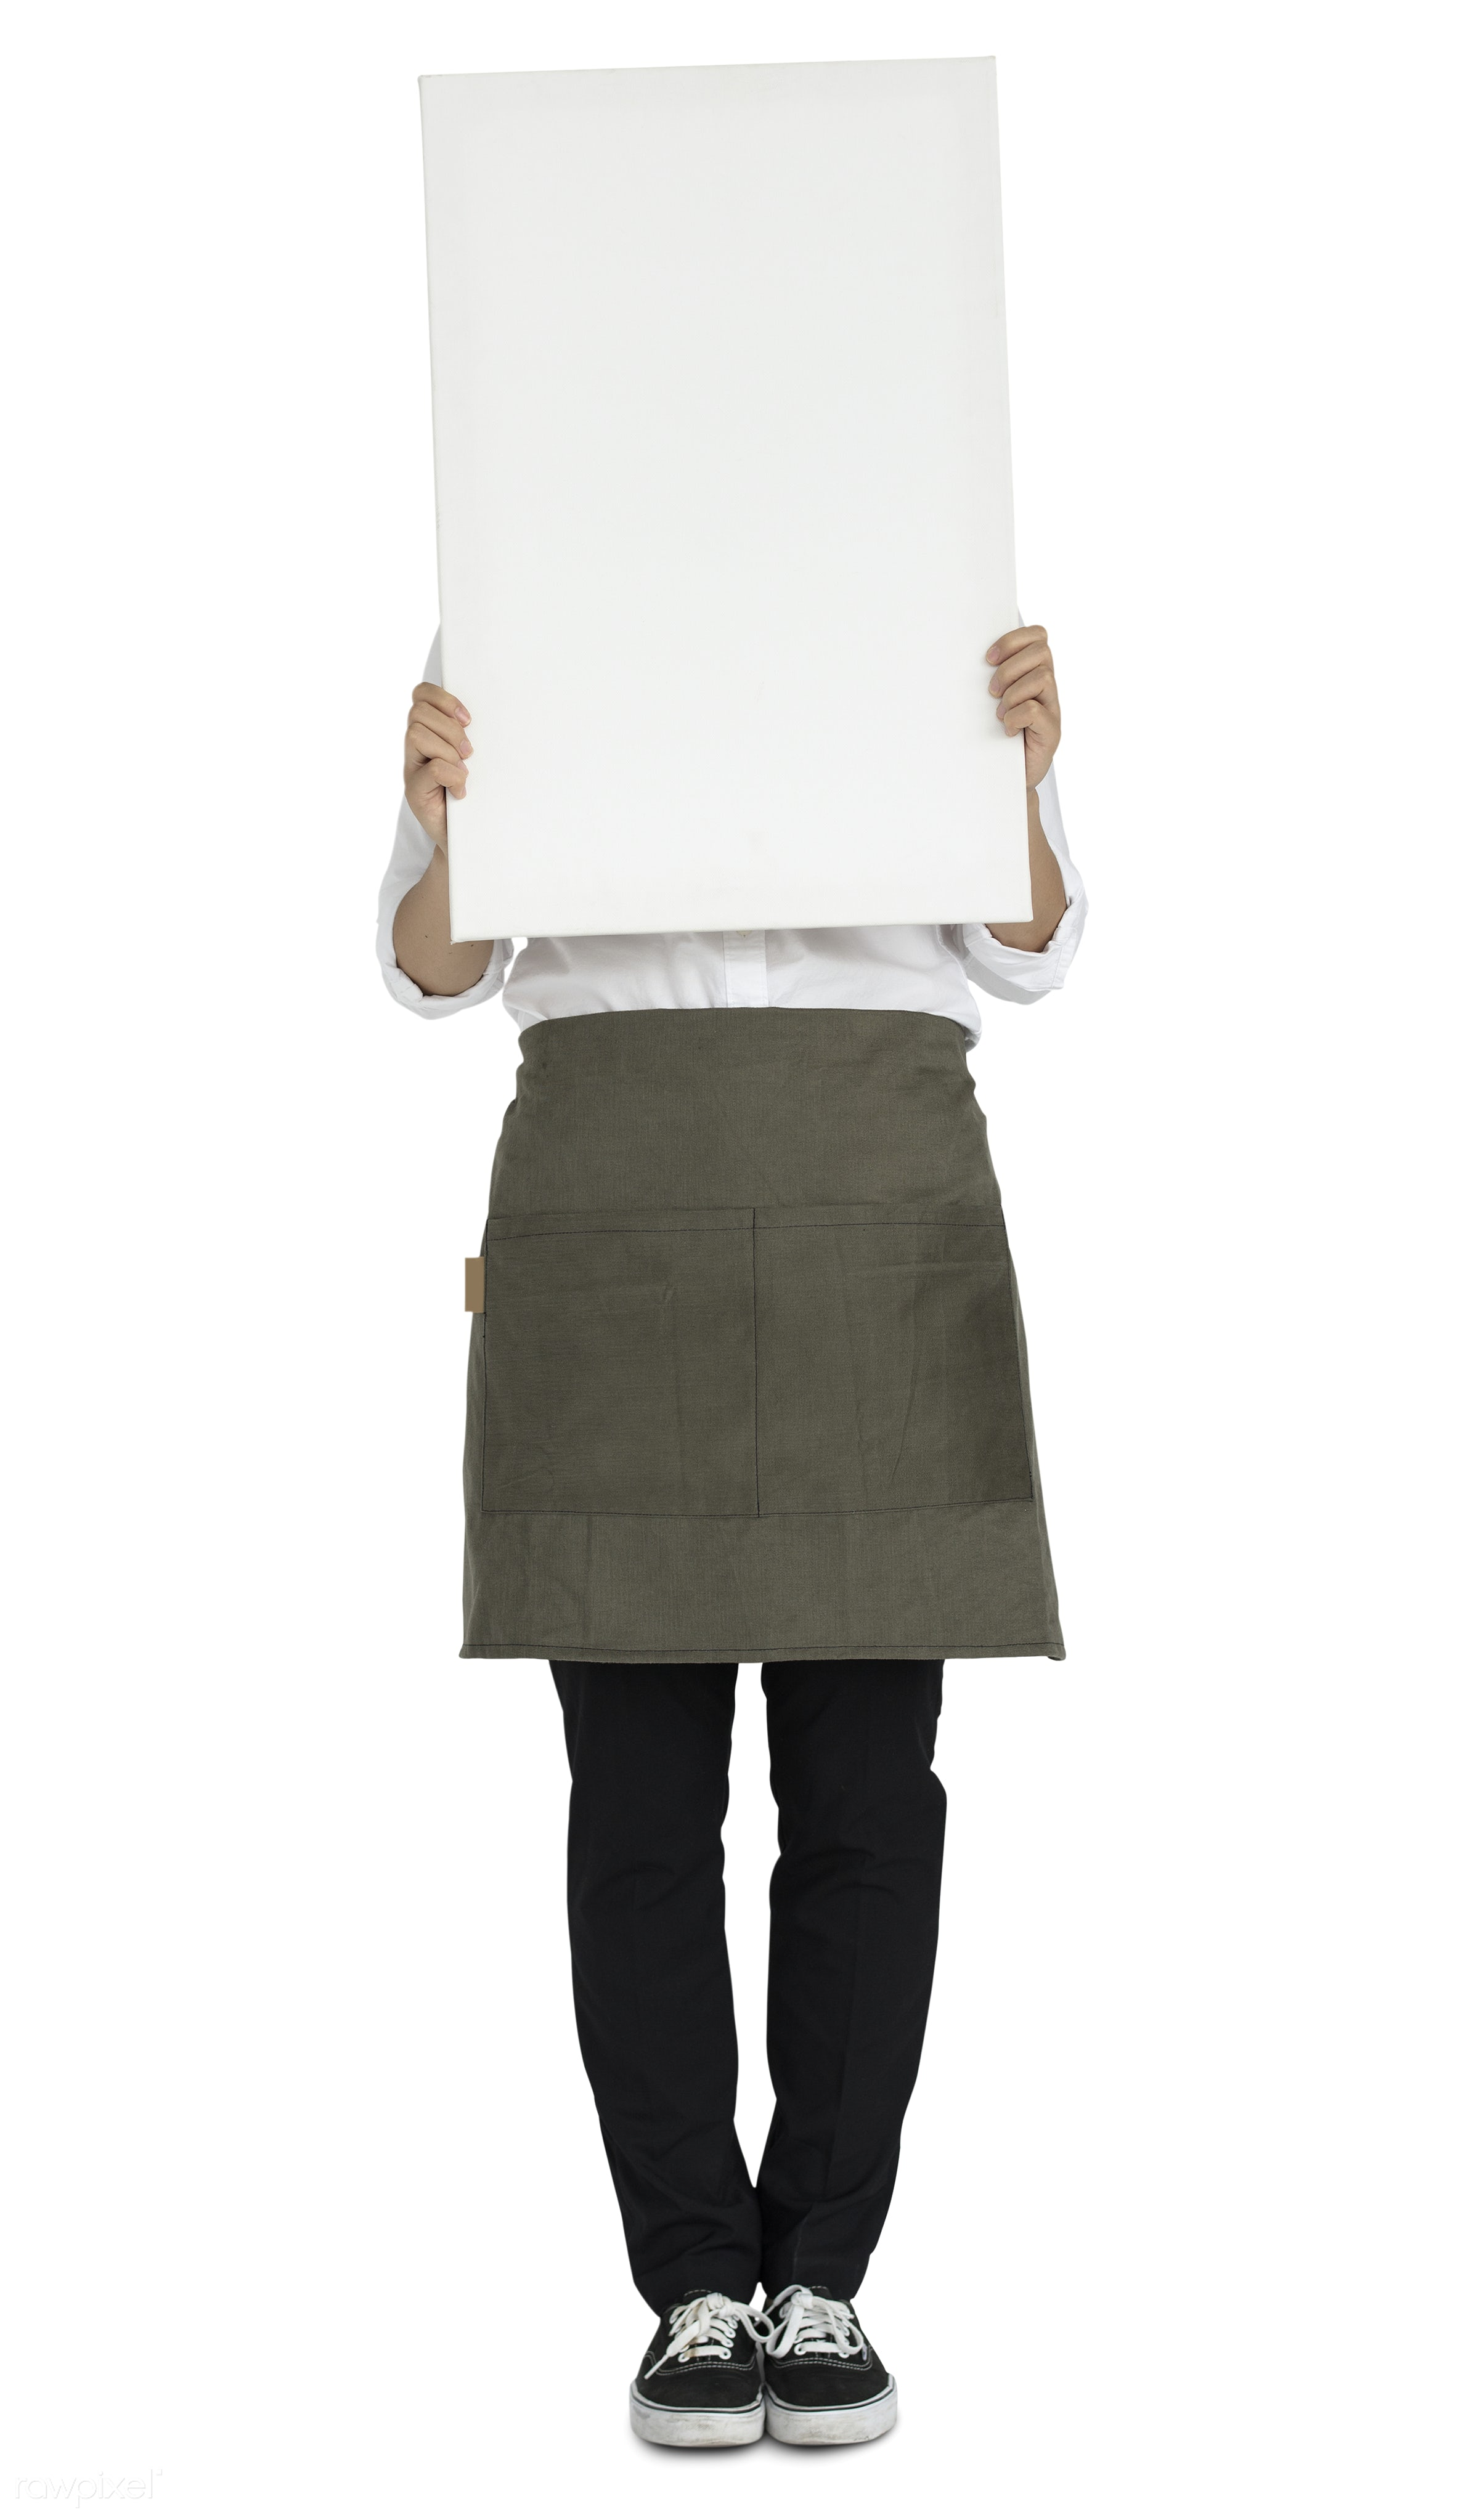 mockup, isolated, placard, adult, apron, background, banner, blank, casual, copy space, female, girl, holding, isolated on...